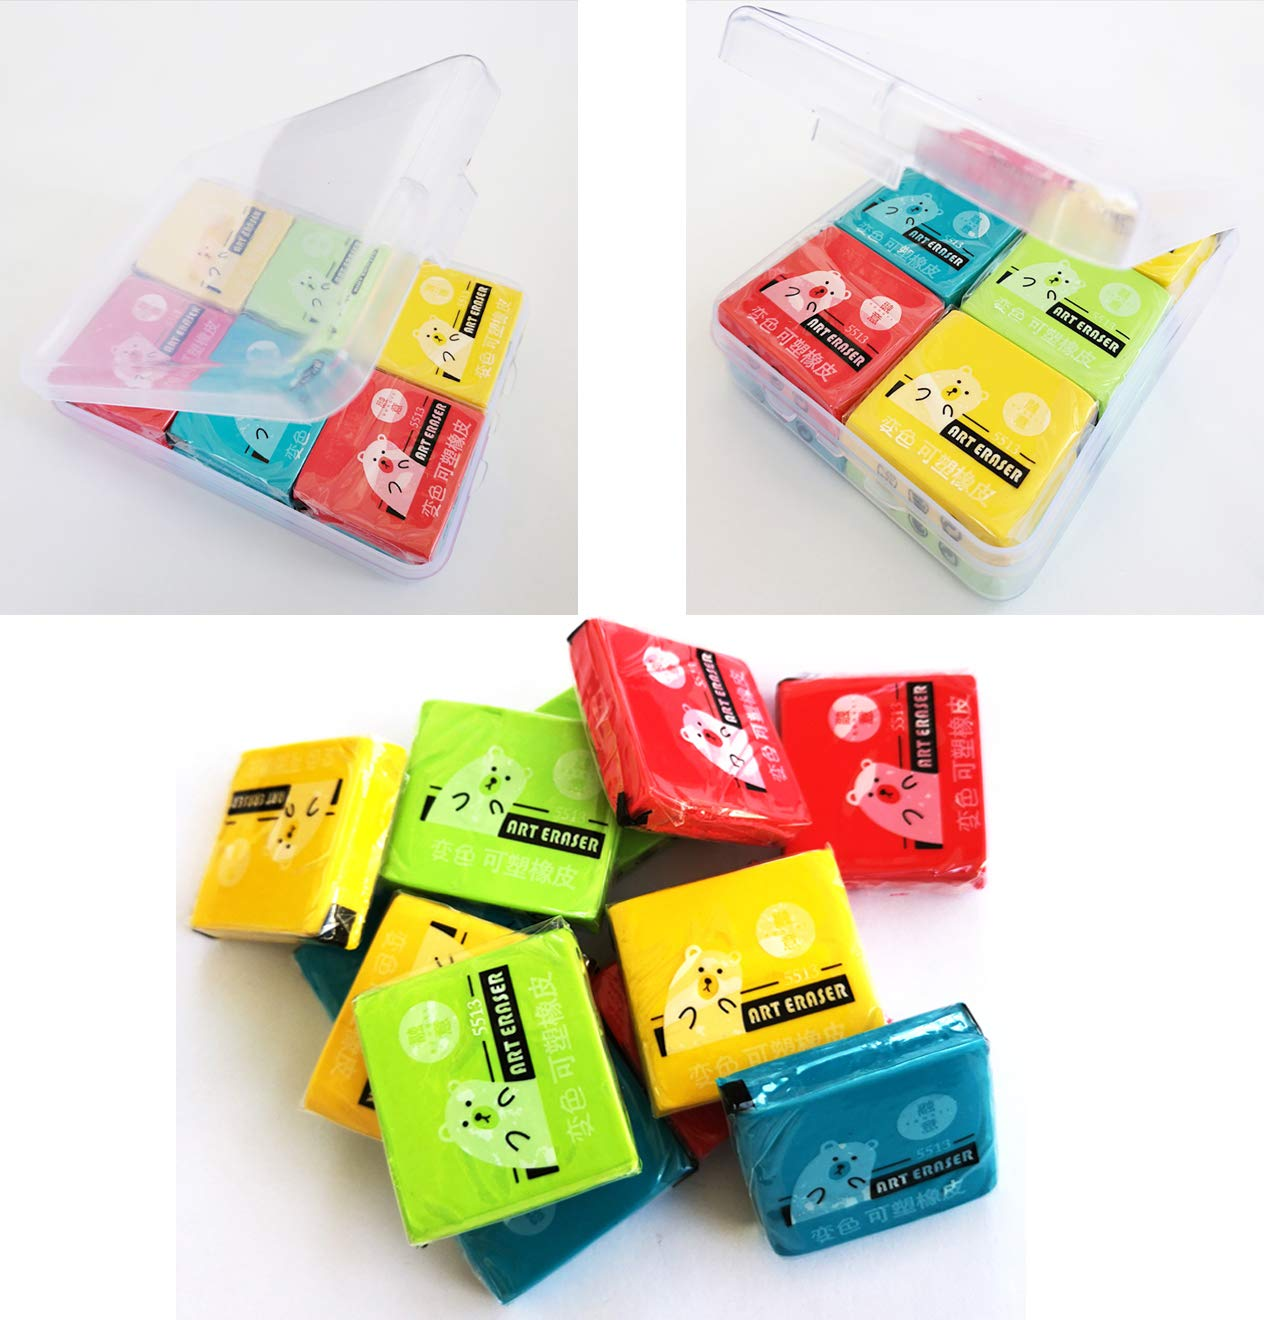 Erasers,Kneaded Rubber Eraser,Reusable and Non-Drying,12 Pack Large Size,Multiple Colour by SONGLAN (Image #1)